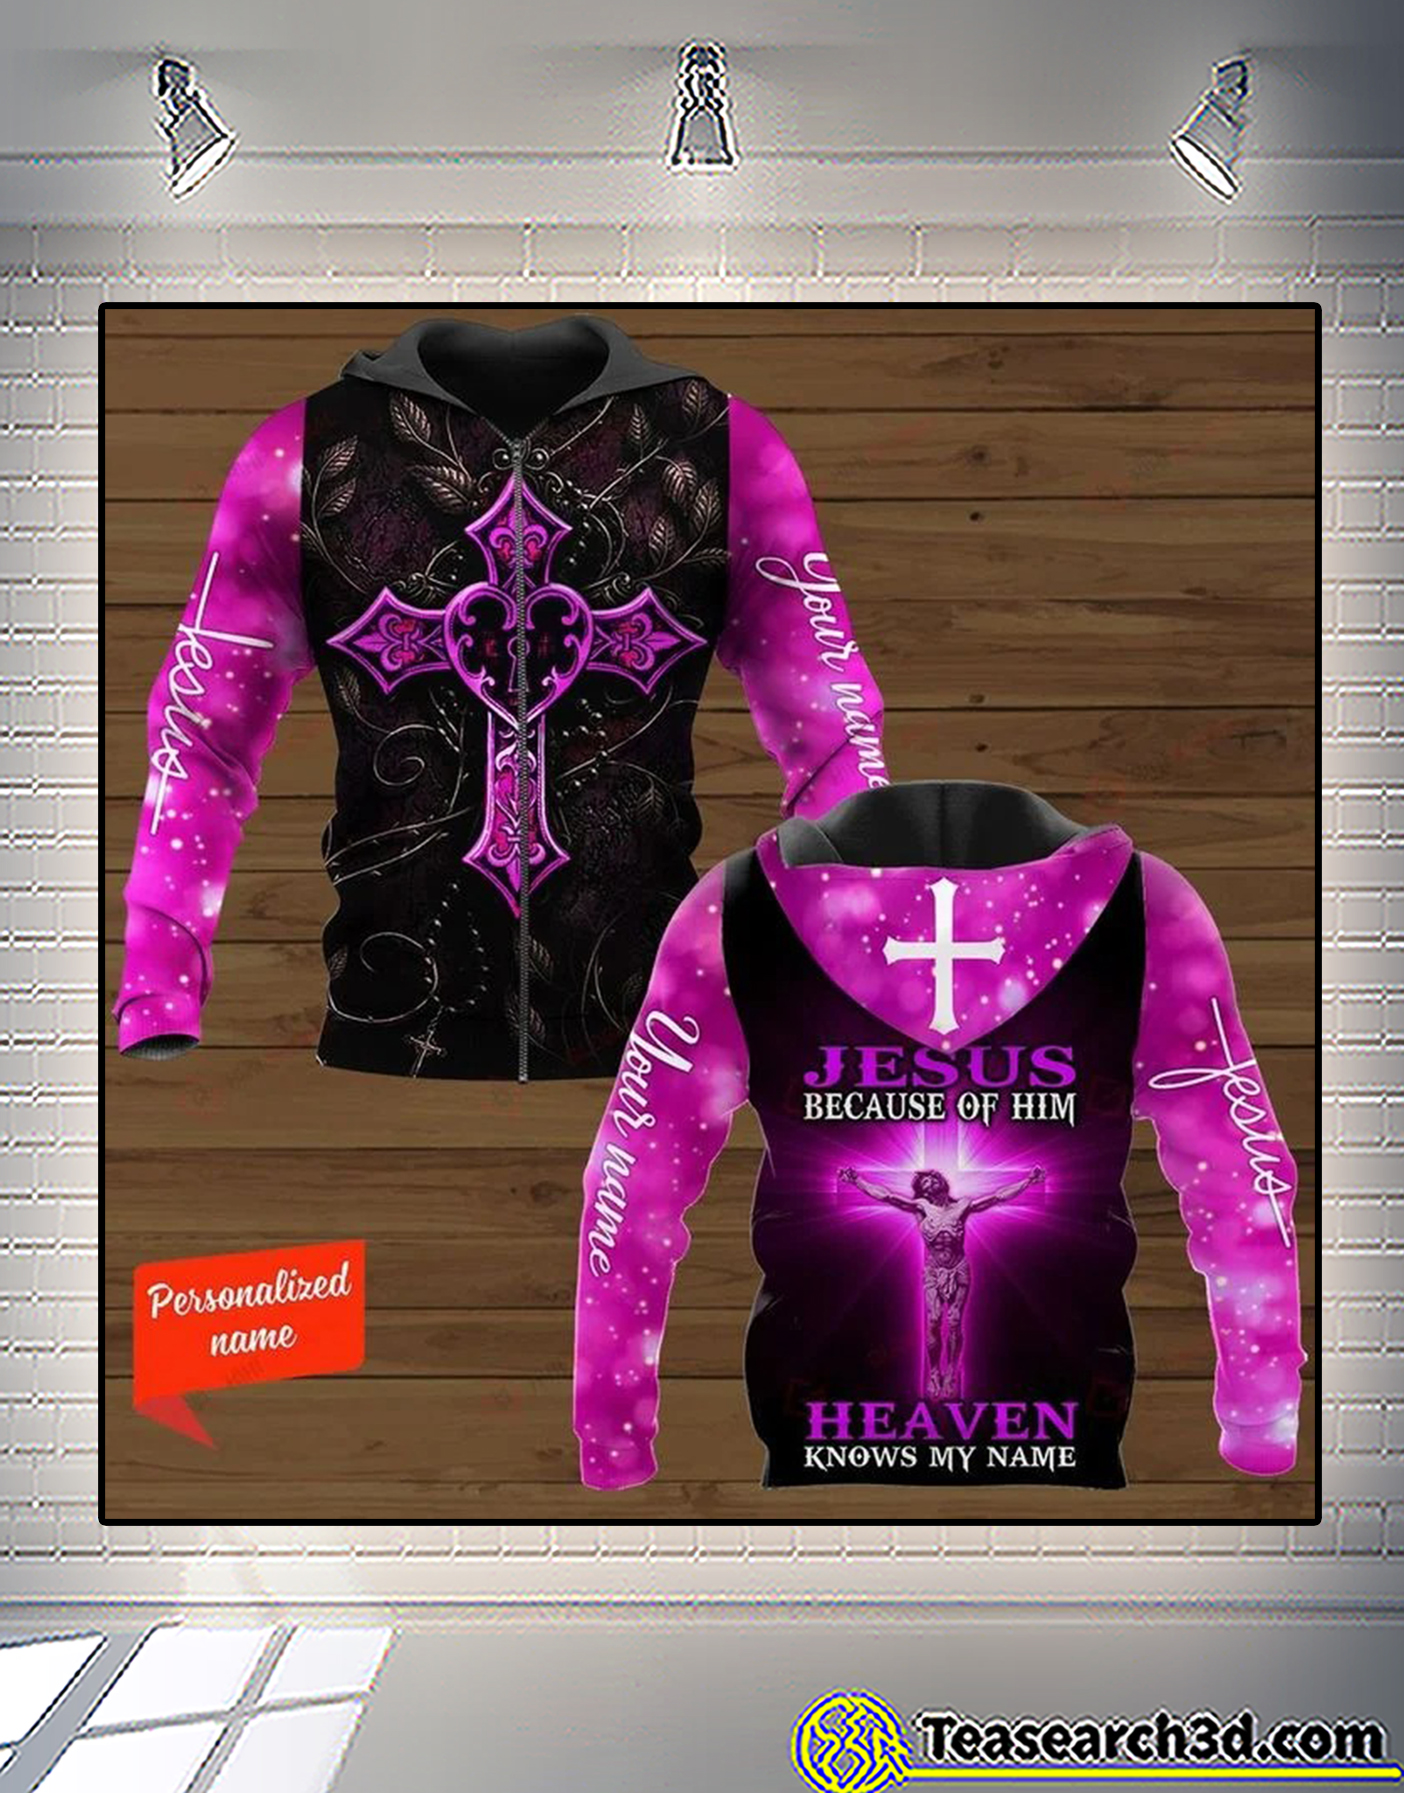 Personalized Cross jesus because of him heaven knows my name 3d all over printed shirt